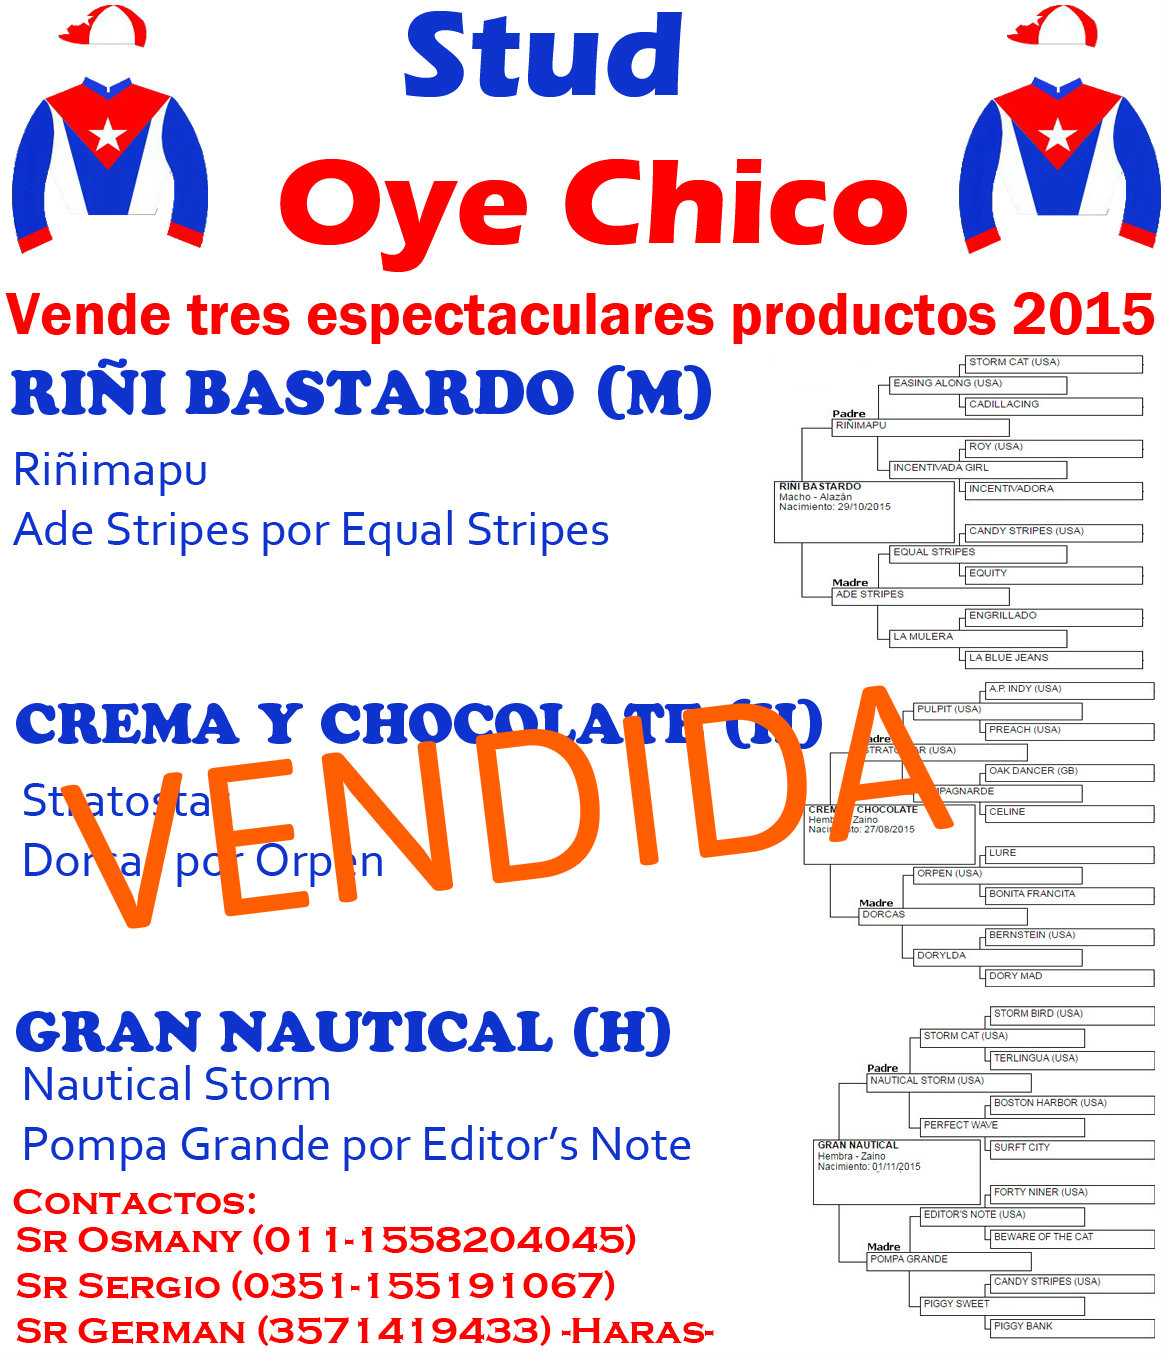 OYE CHICO PRODUCTOS